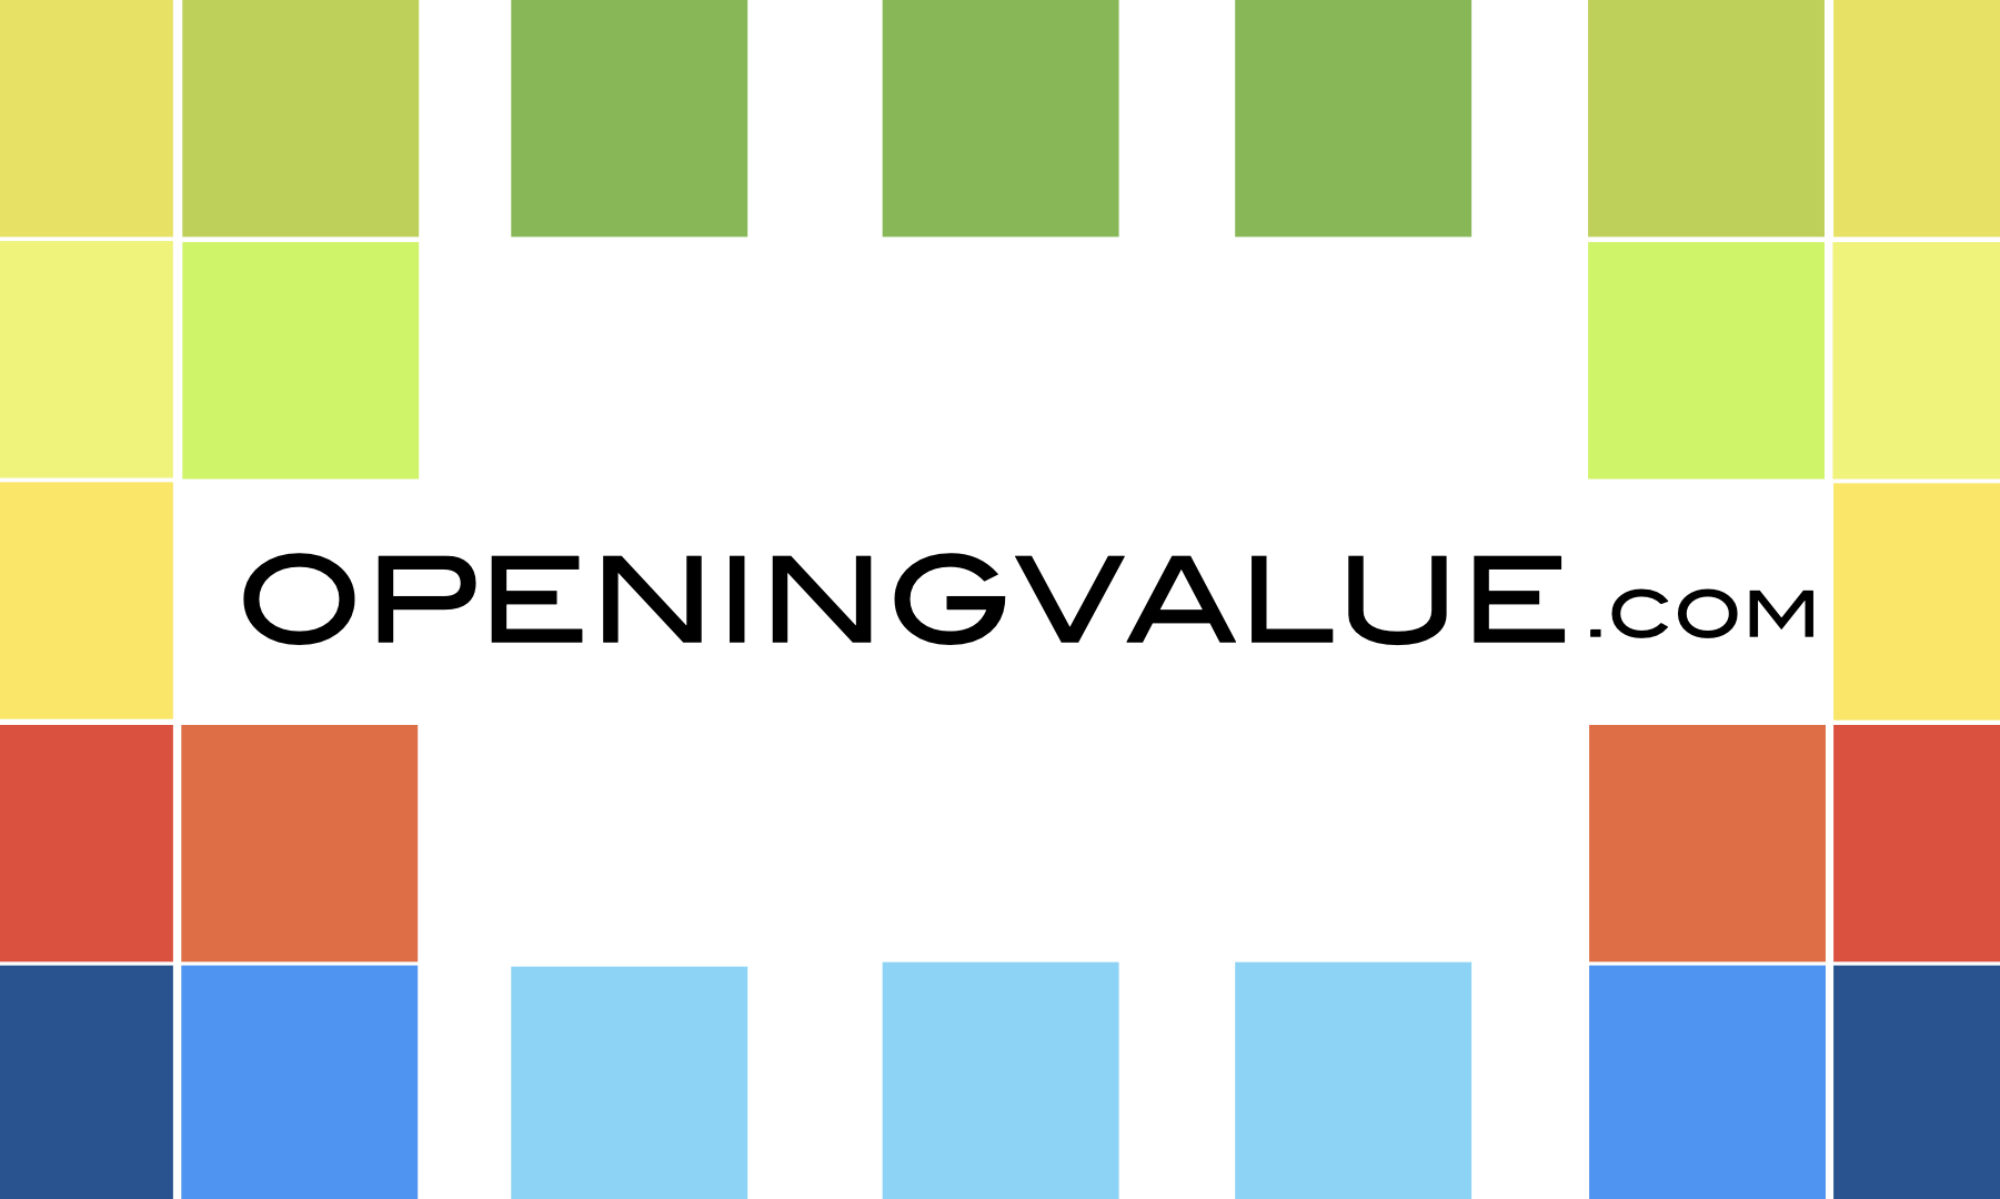 Opening Value